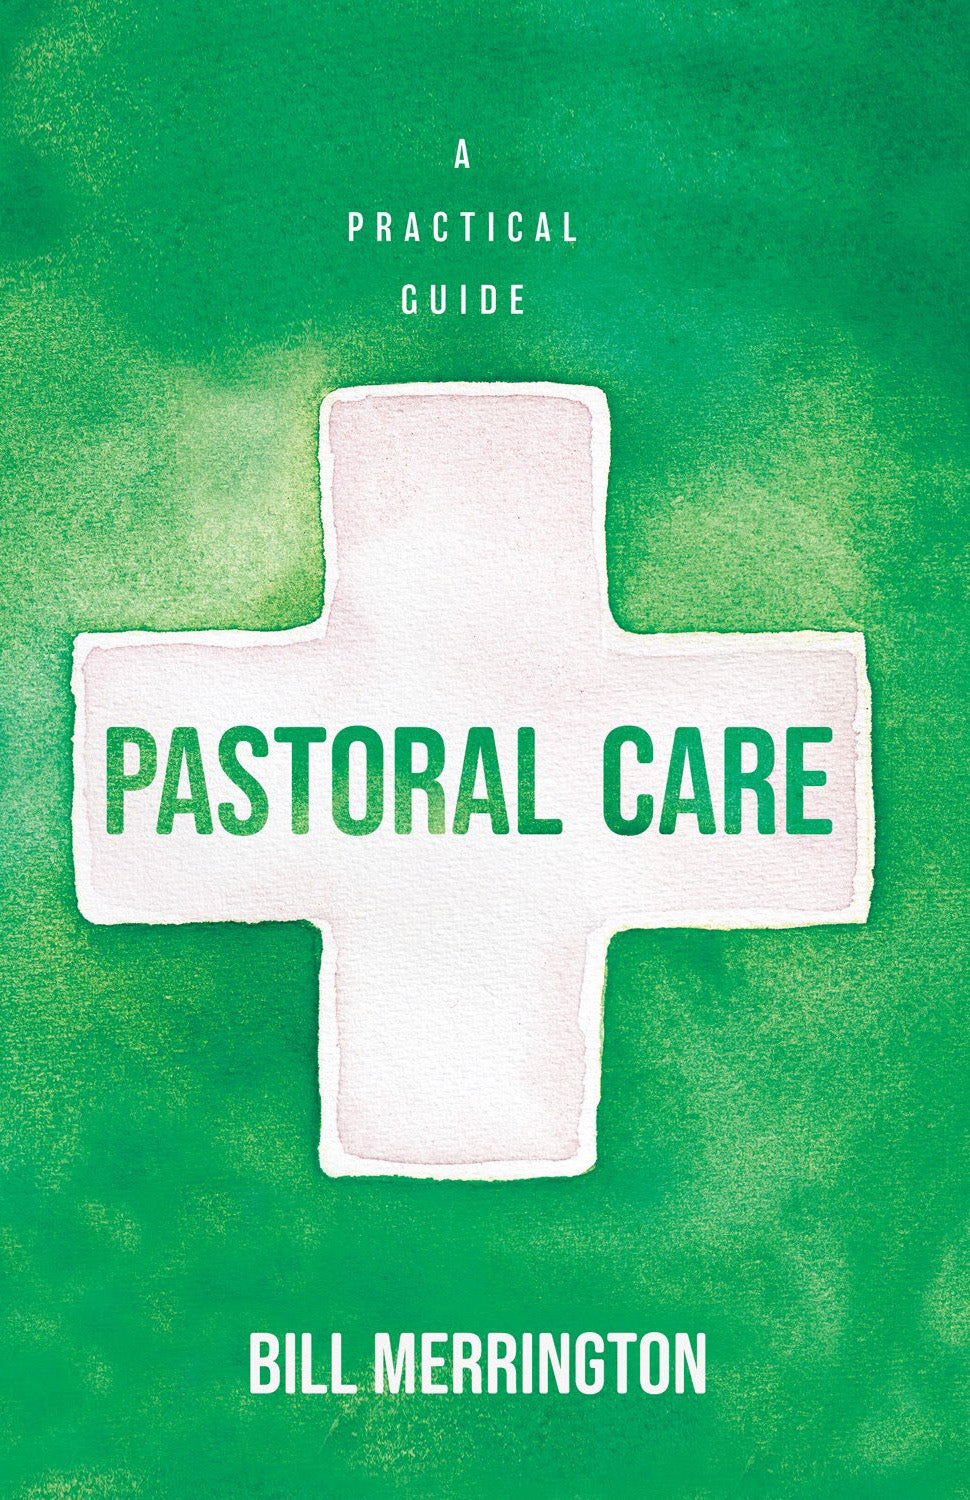 Pastoral Care - A Practical Guide